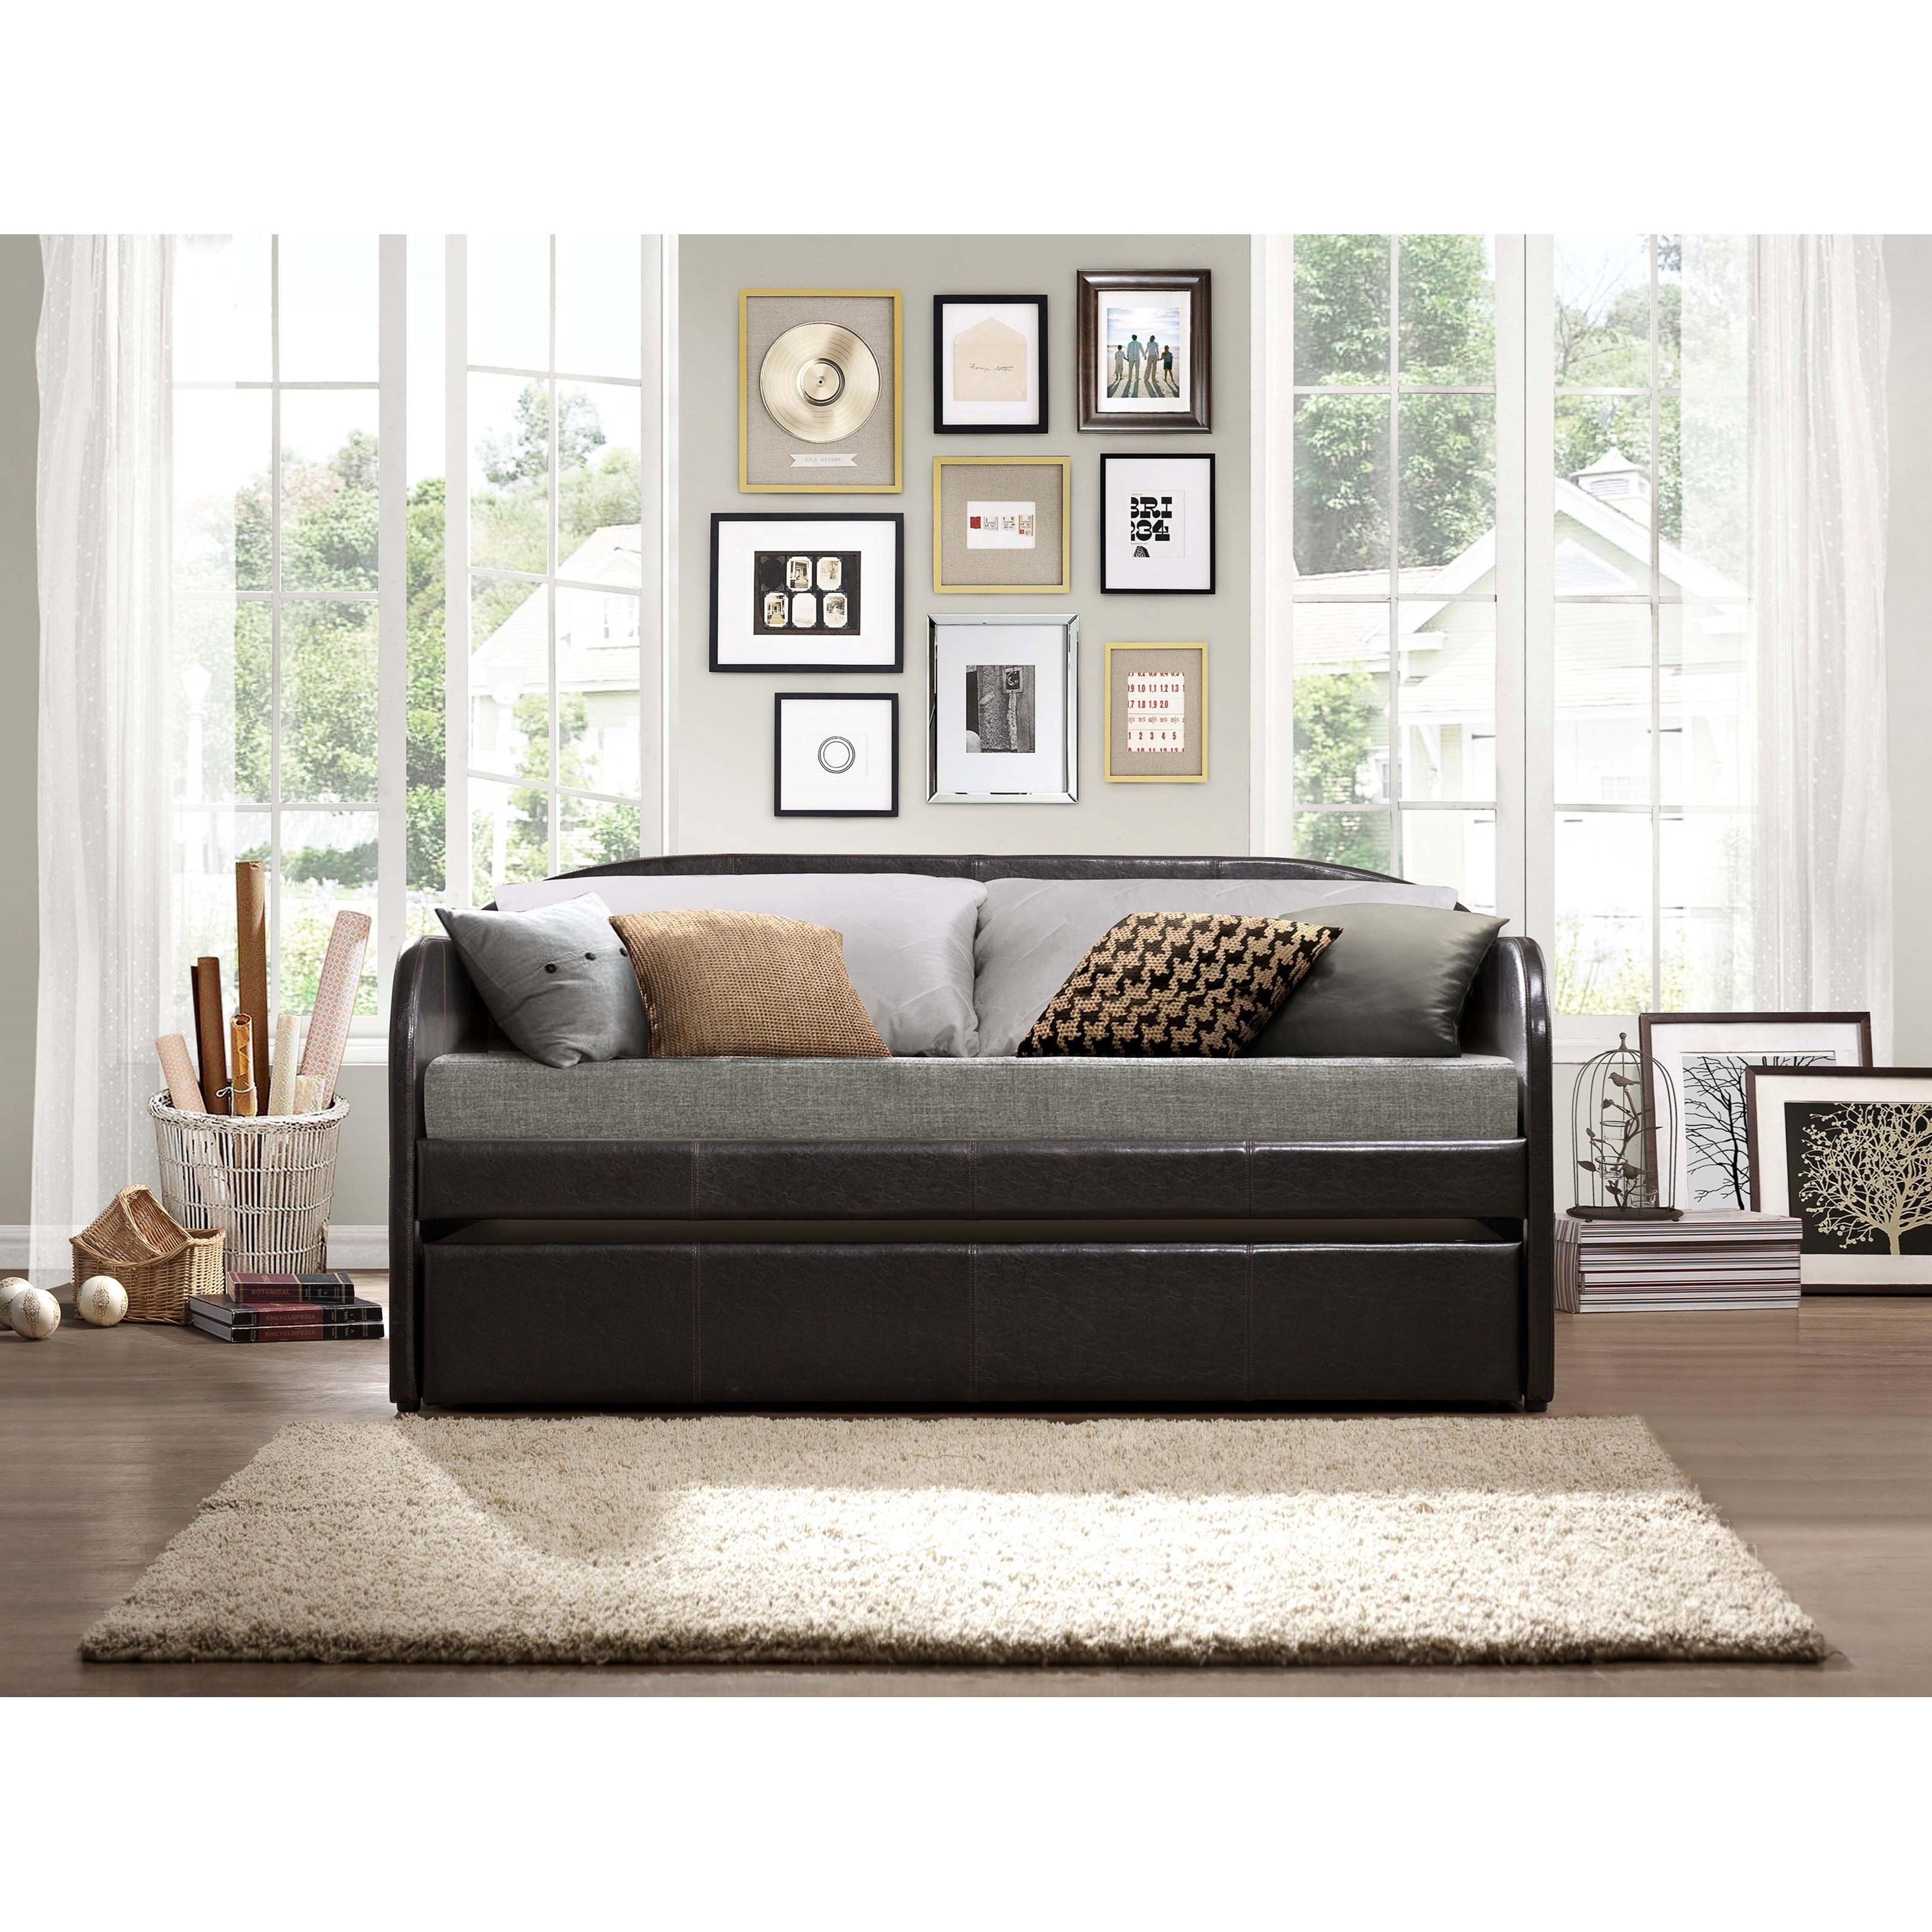 Daybeds Roland Daybed with Trundle by Homelegance at Darvin Furniture